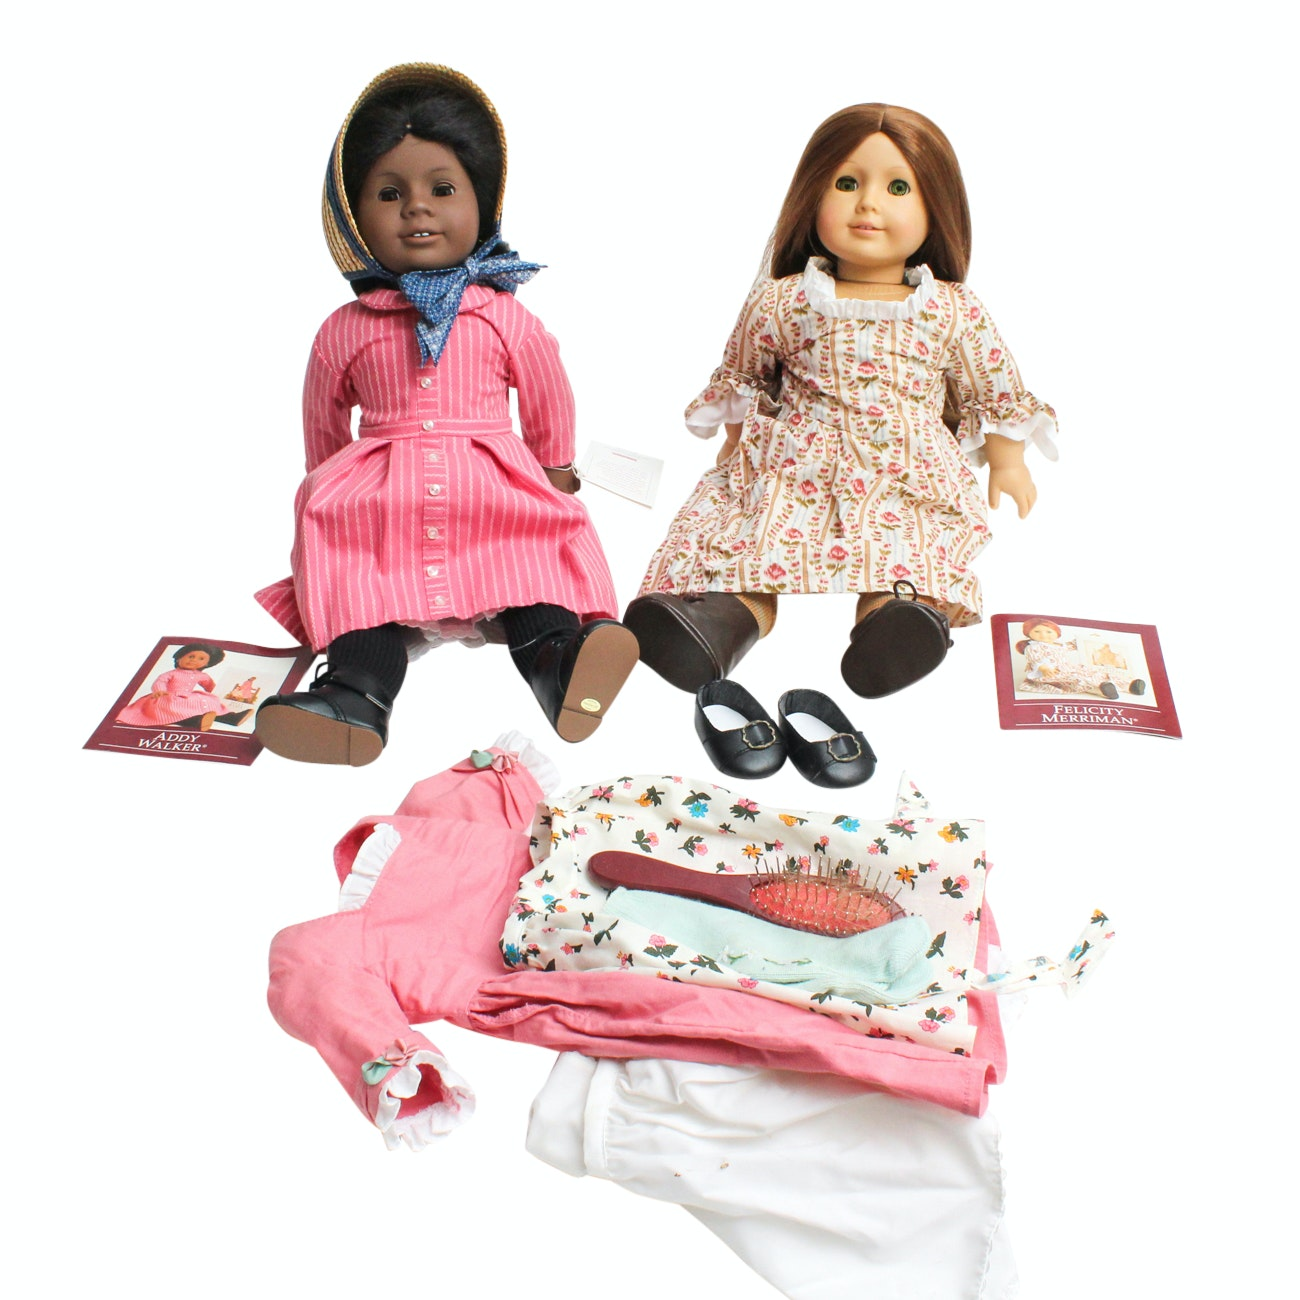 American Girl Doll Historical Characters Felicity Marriman and Addy Walker